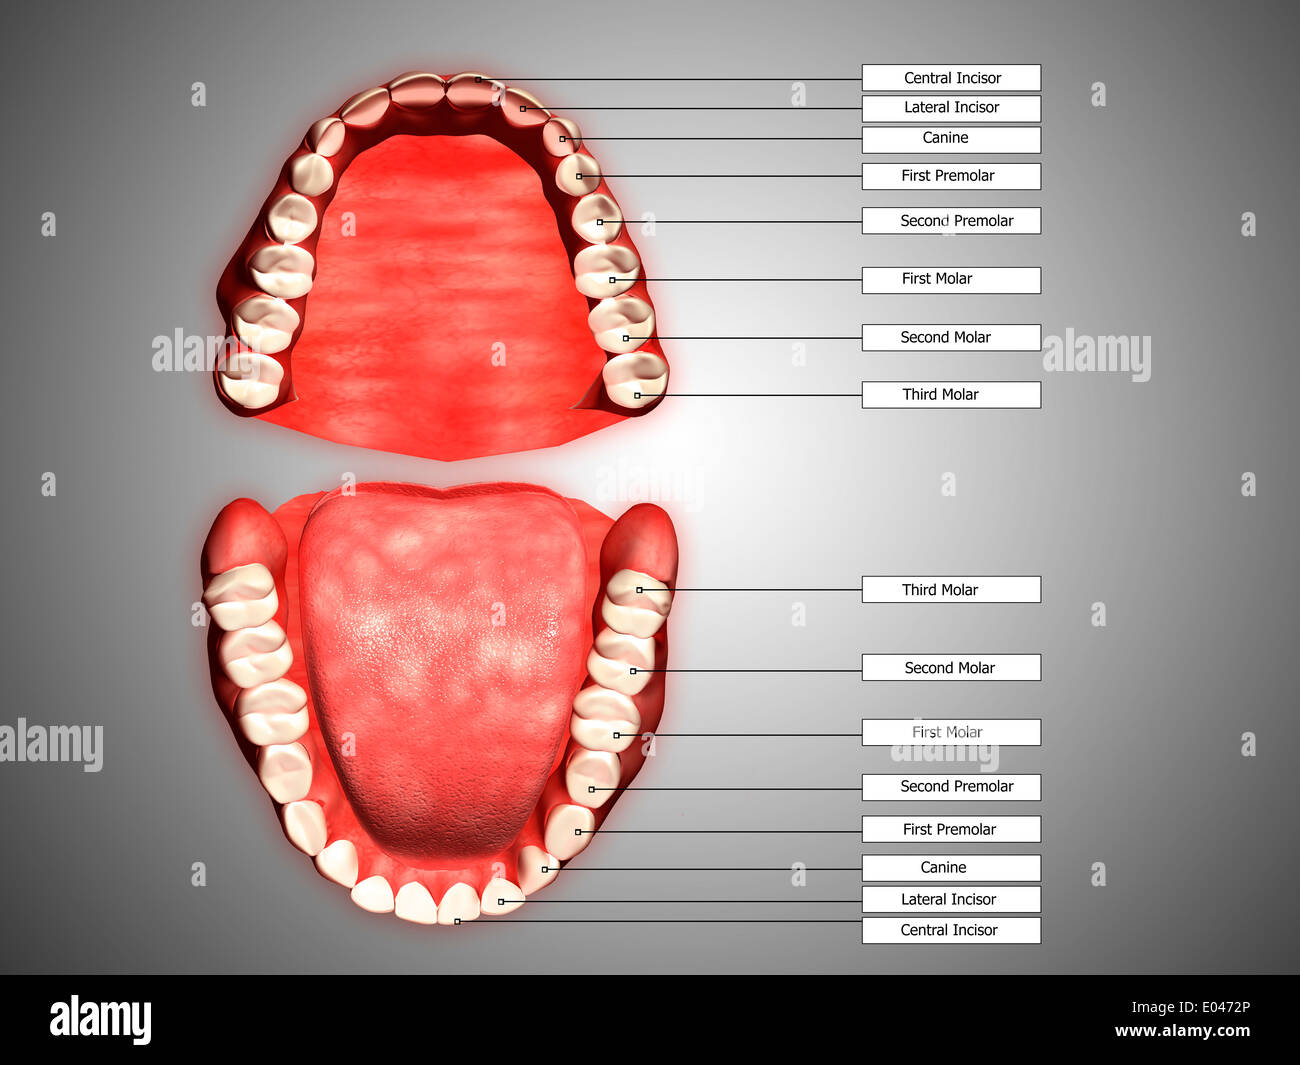 Human Teeth Structure With Labels Stock Photo 68934846 Alamy